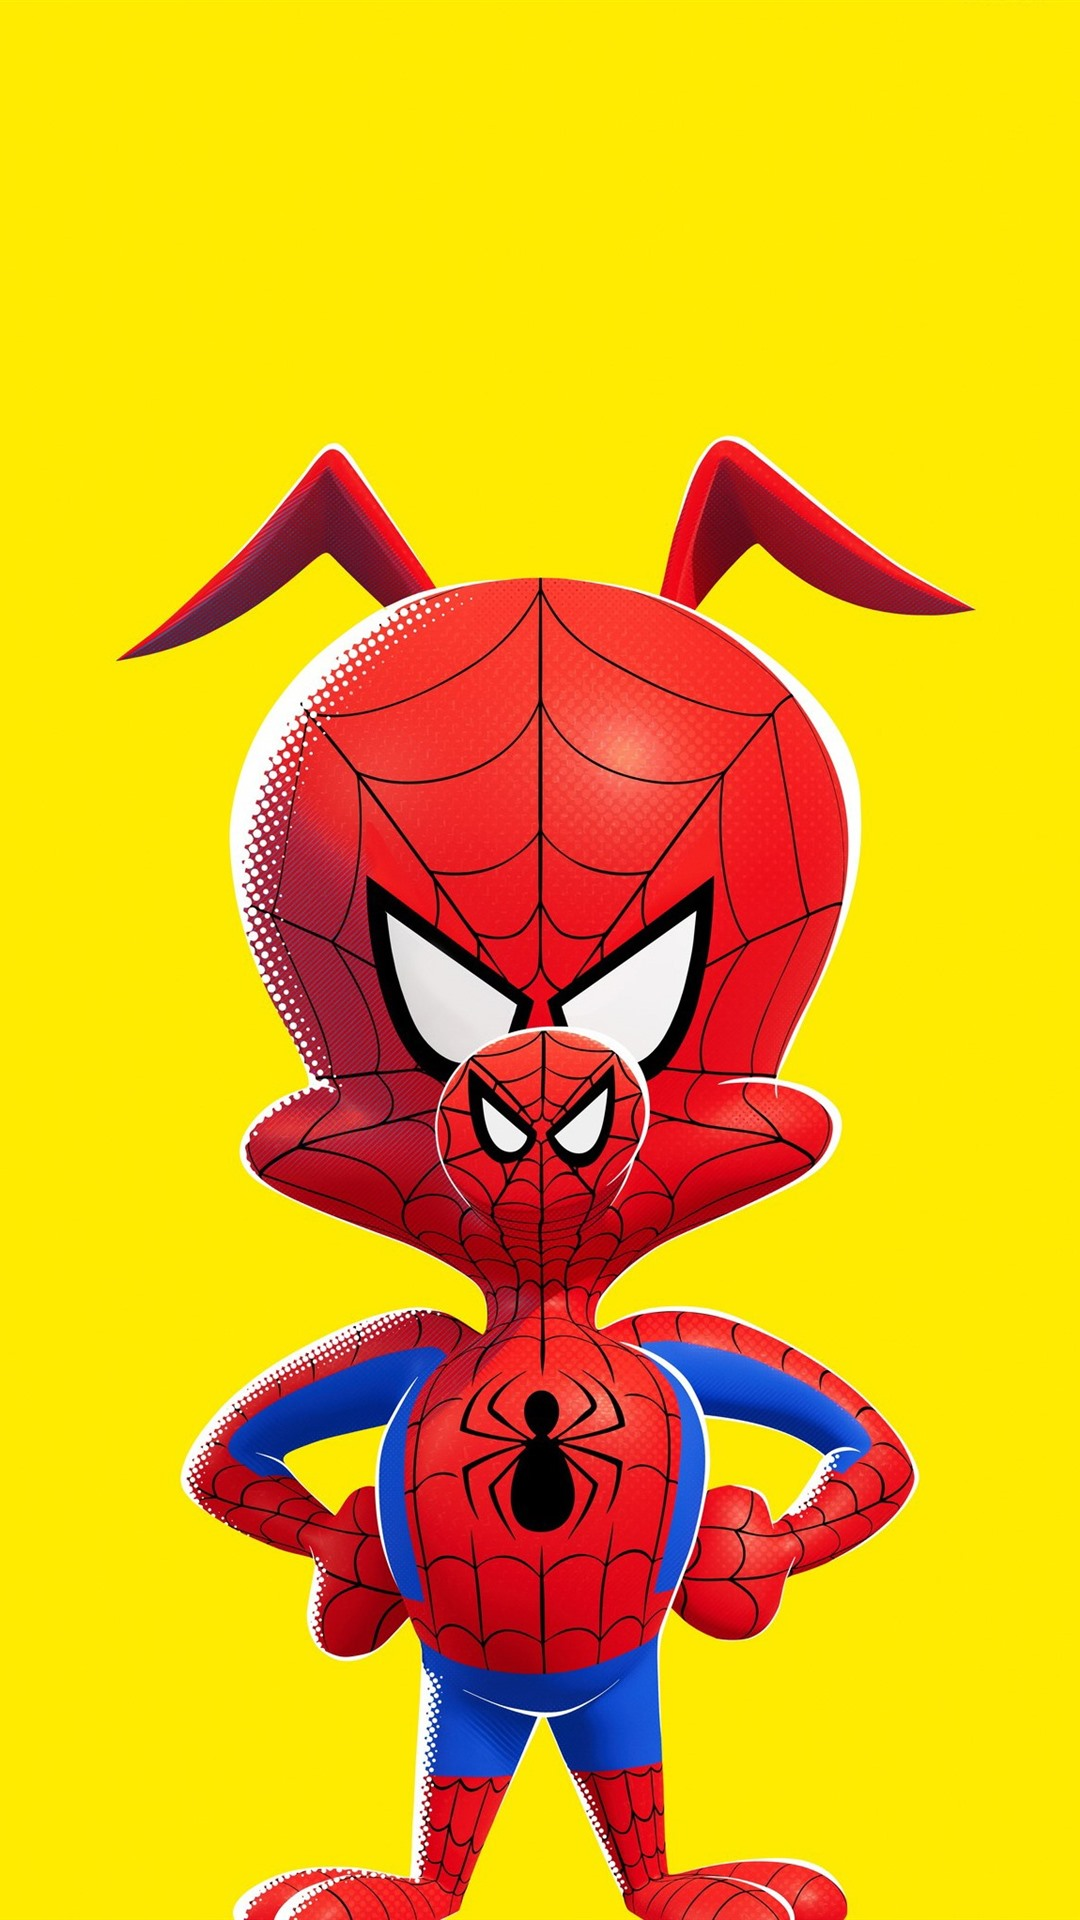 Spider Man Into The Spider Verse 2018 1080x1920 Iphone 8 7 6 6s